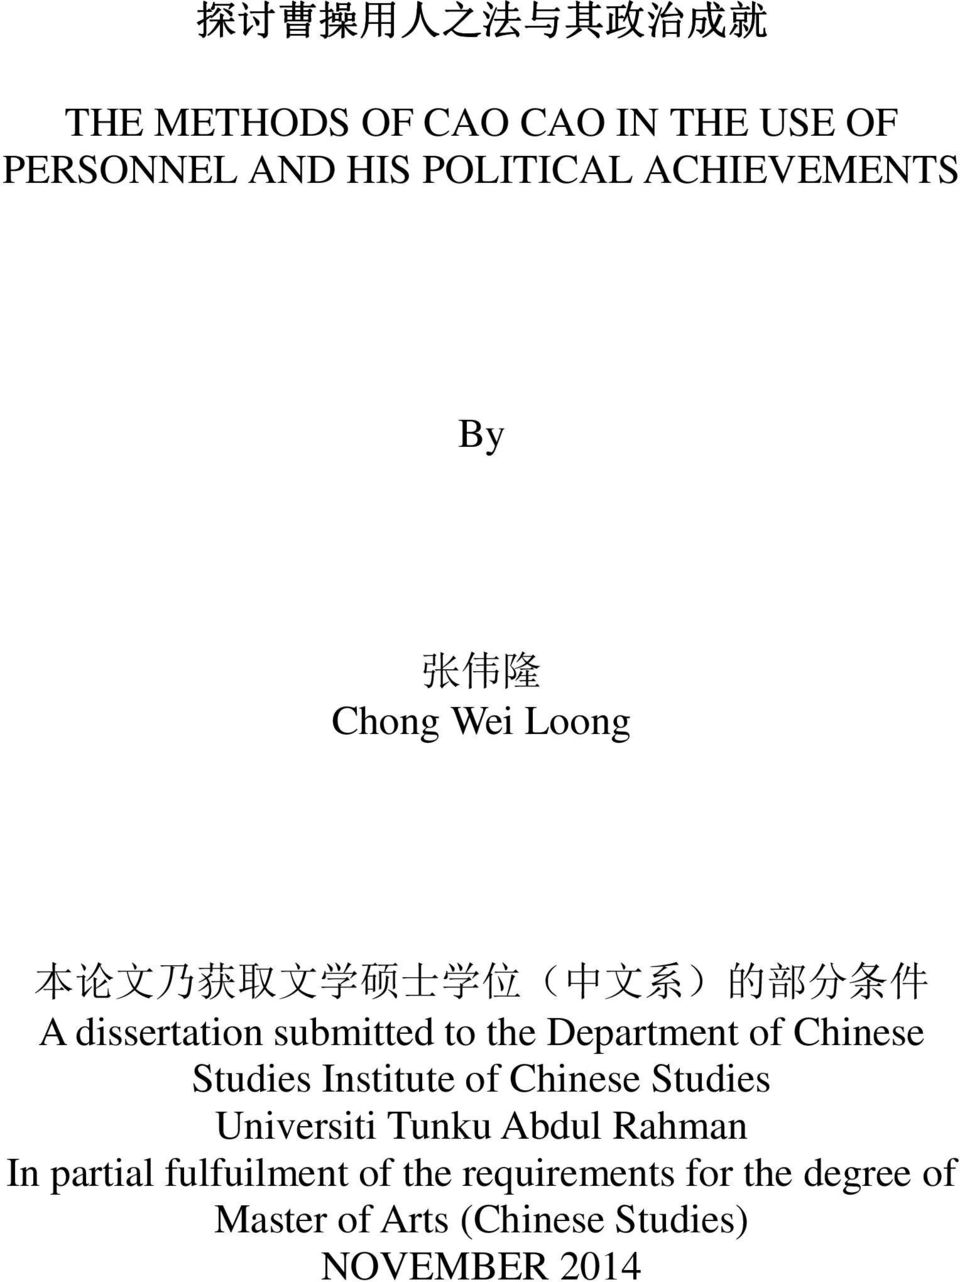 submitted to the Department of Chinese Studies Institute of Chinese Studies Universiti Tunku Abdul